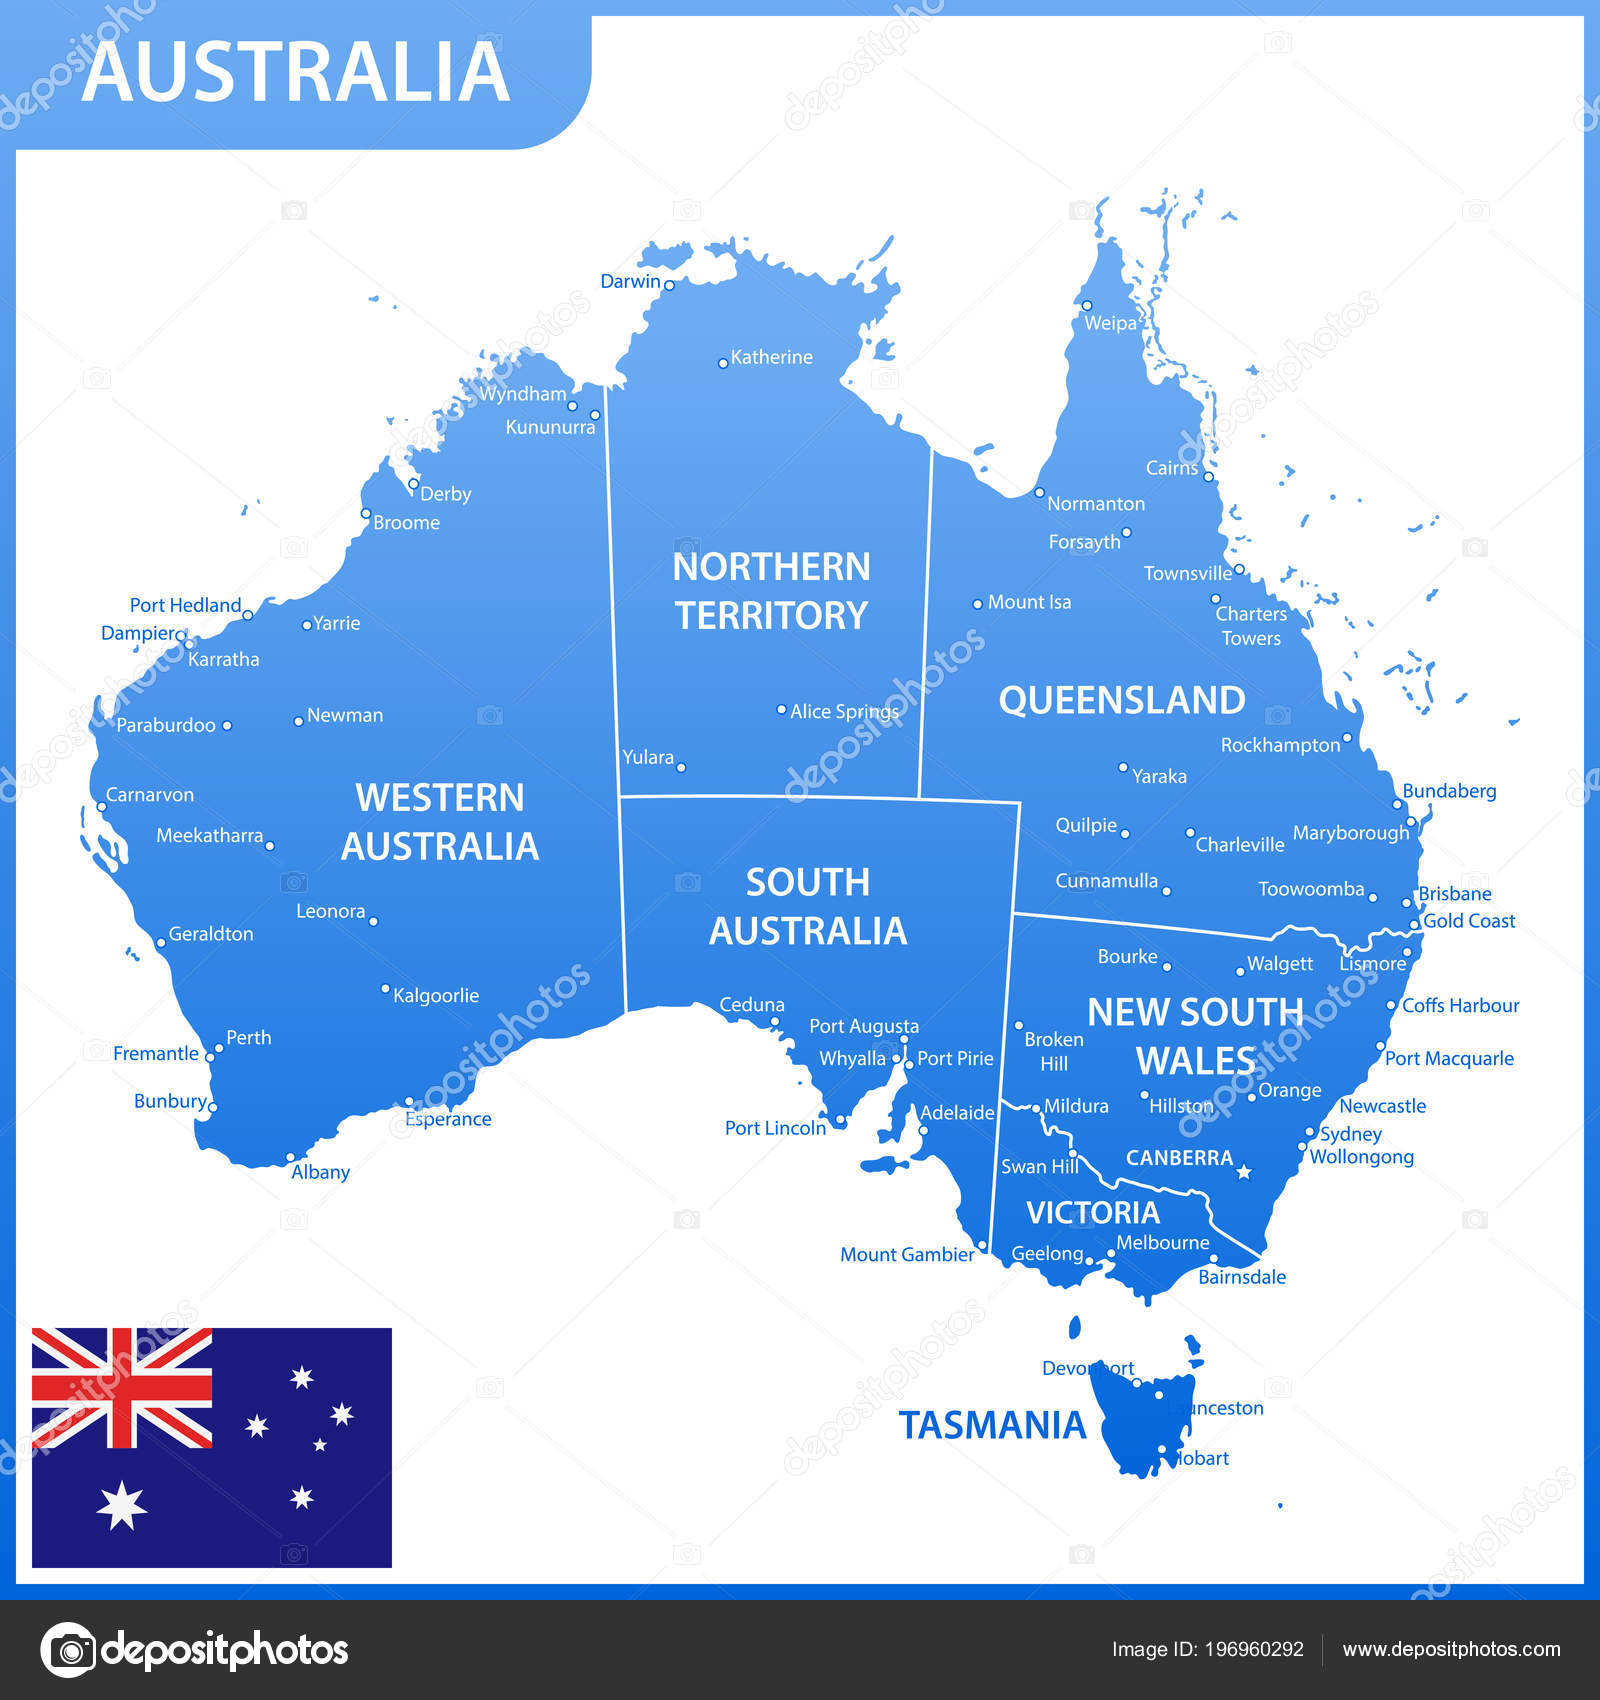 Map Of Australia With Capitals.Detailed Map Australia Regions States Cities Capitals National Flag